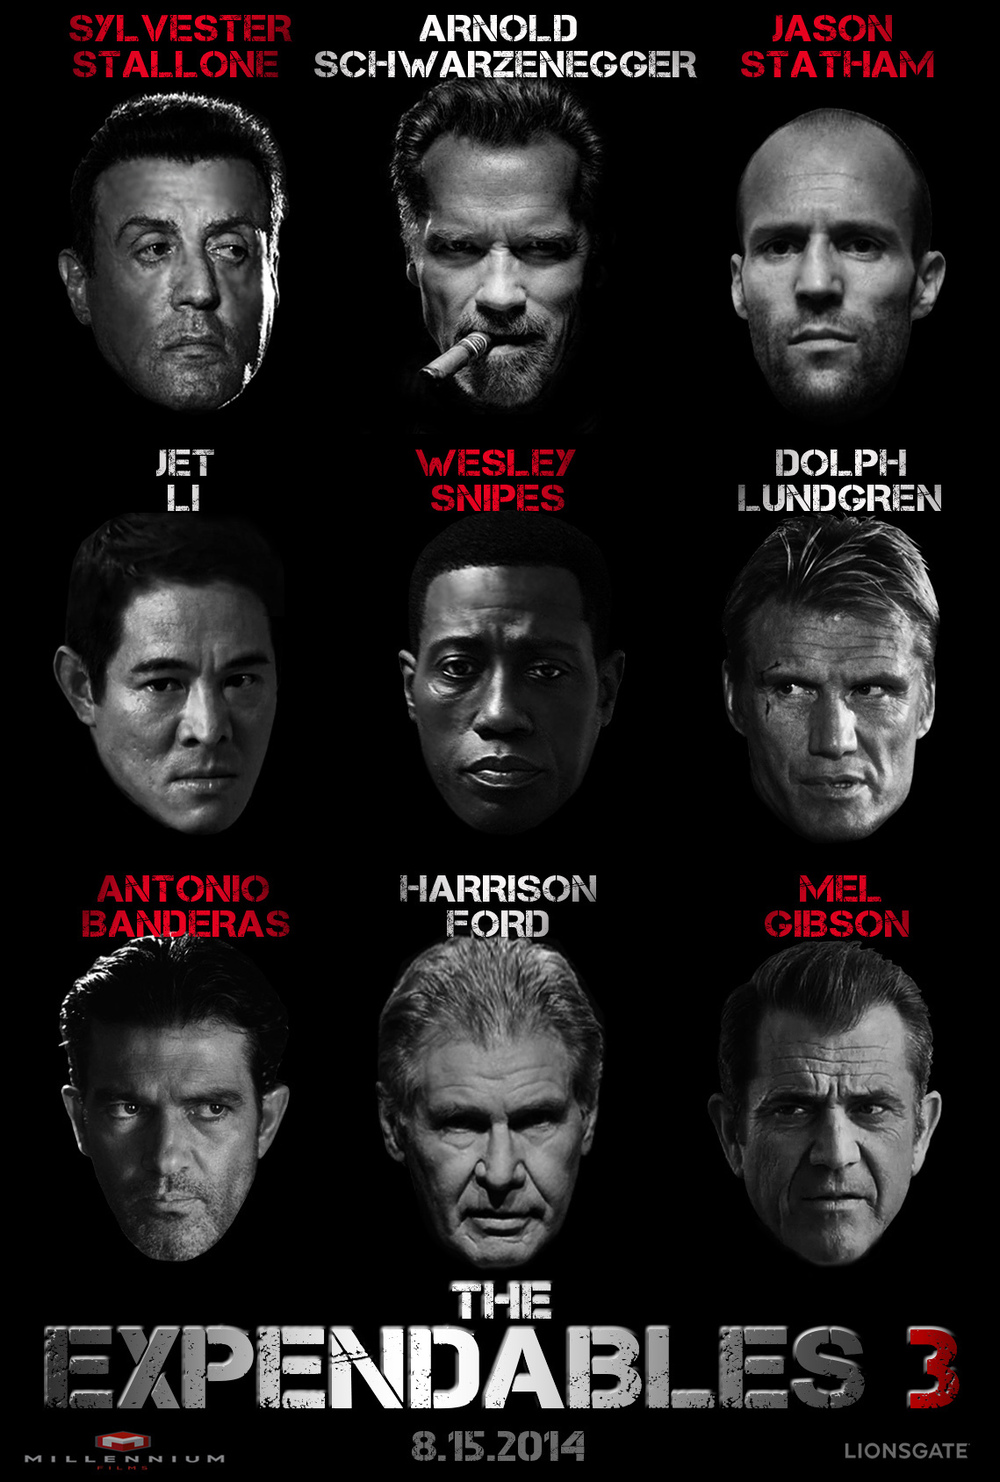 The Expendables 3 DVD Release Date   Redbox, Netflix ...